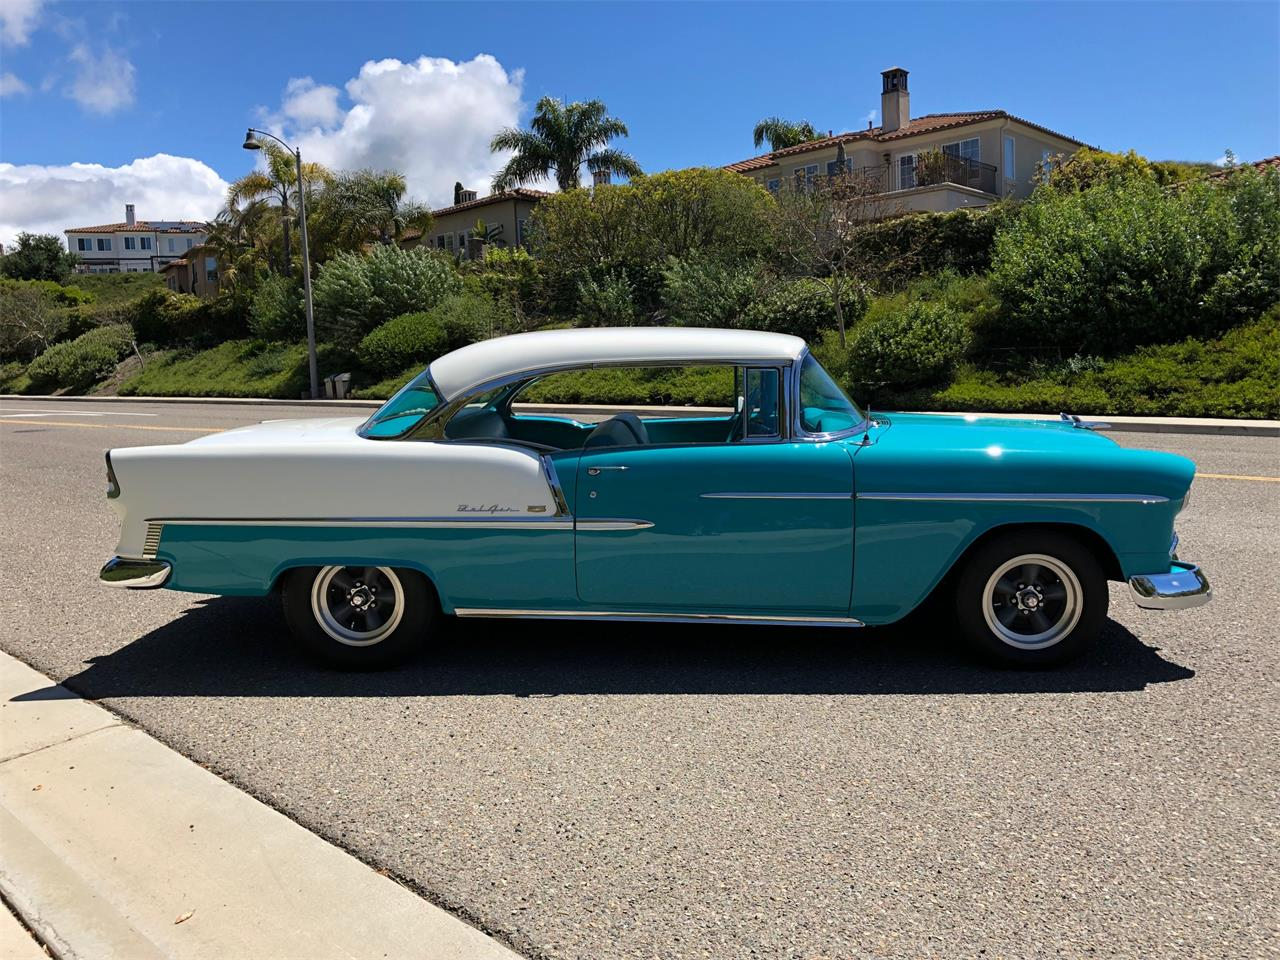 1955 Chevrolet Bel Air for sale in Orange, CA – photo 9